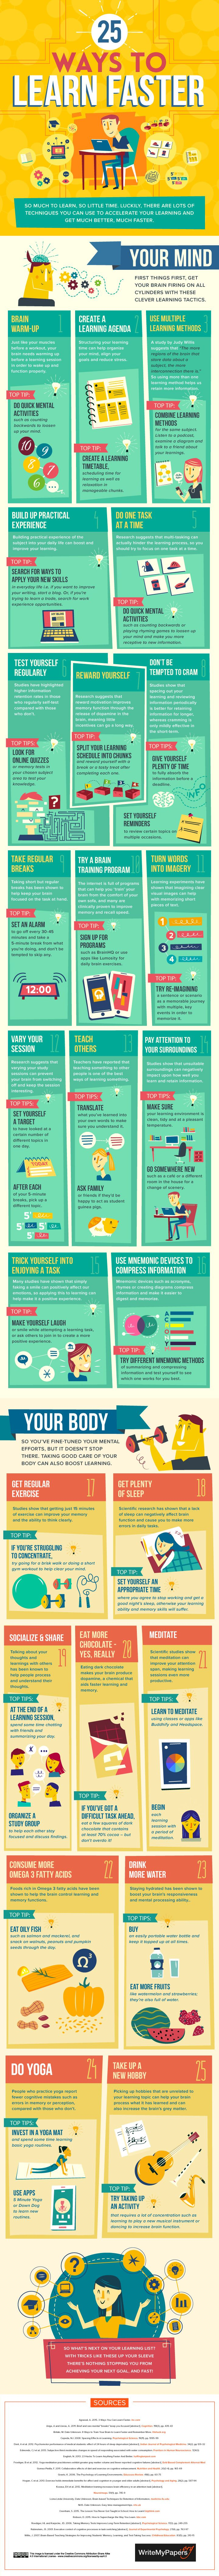 trying-to-learn-to-market-your-business-heres-25-ways-to-learn-faster